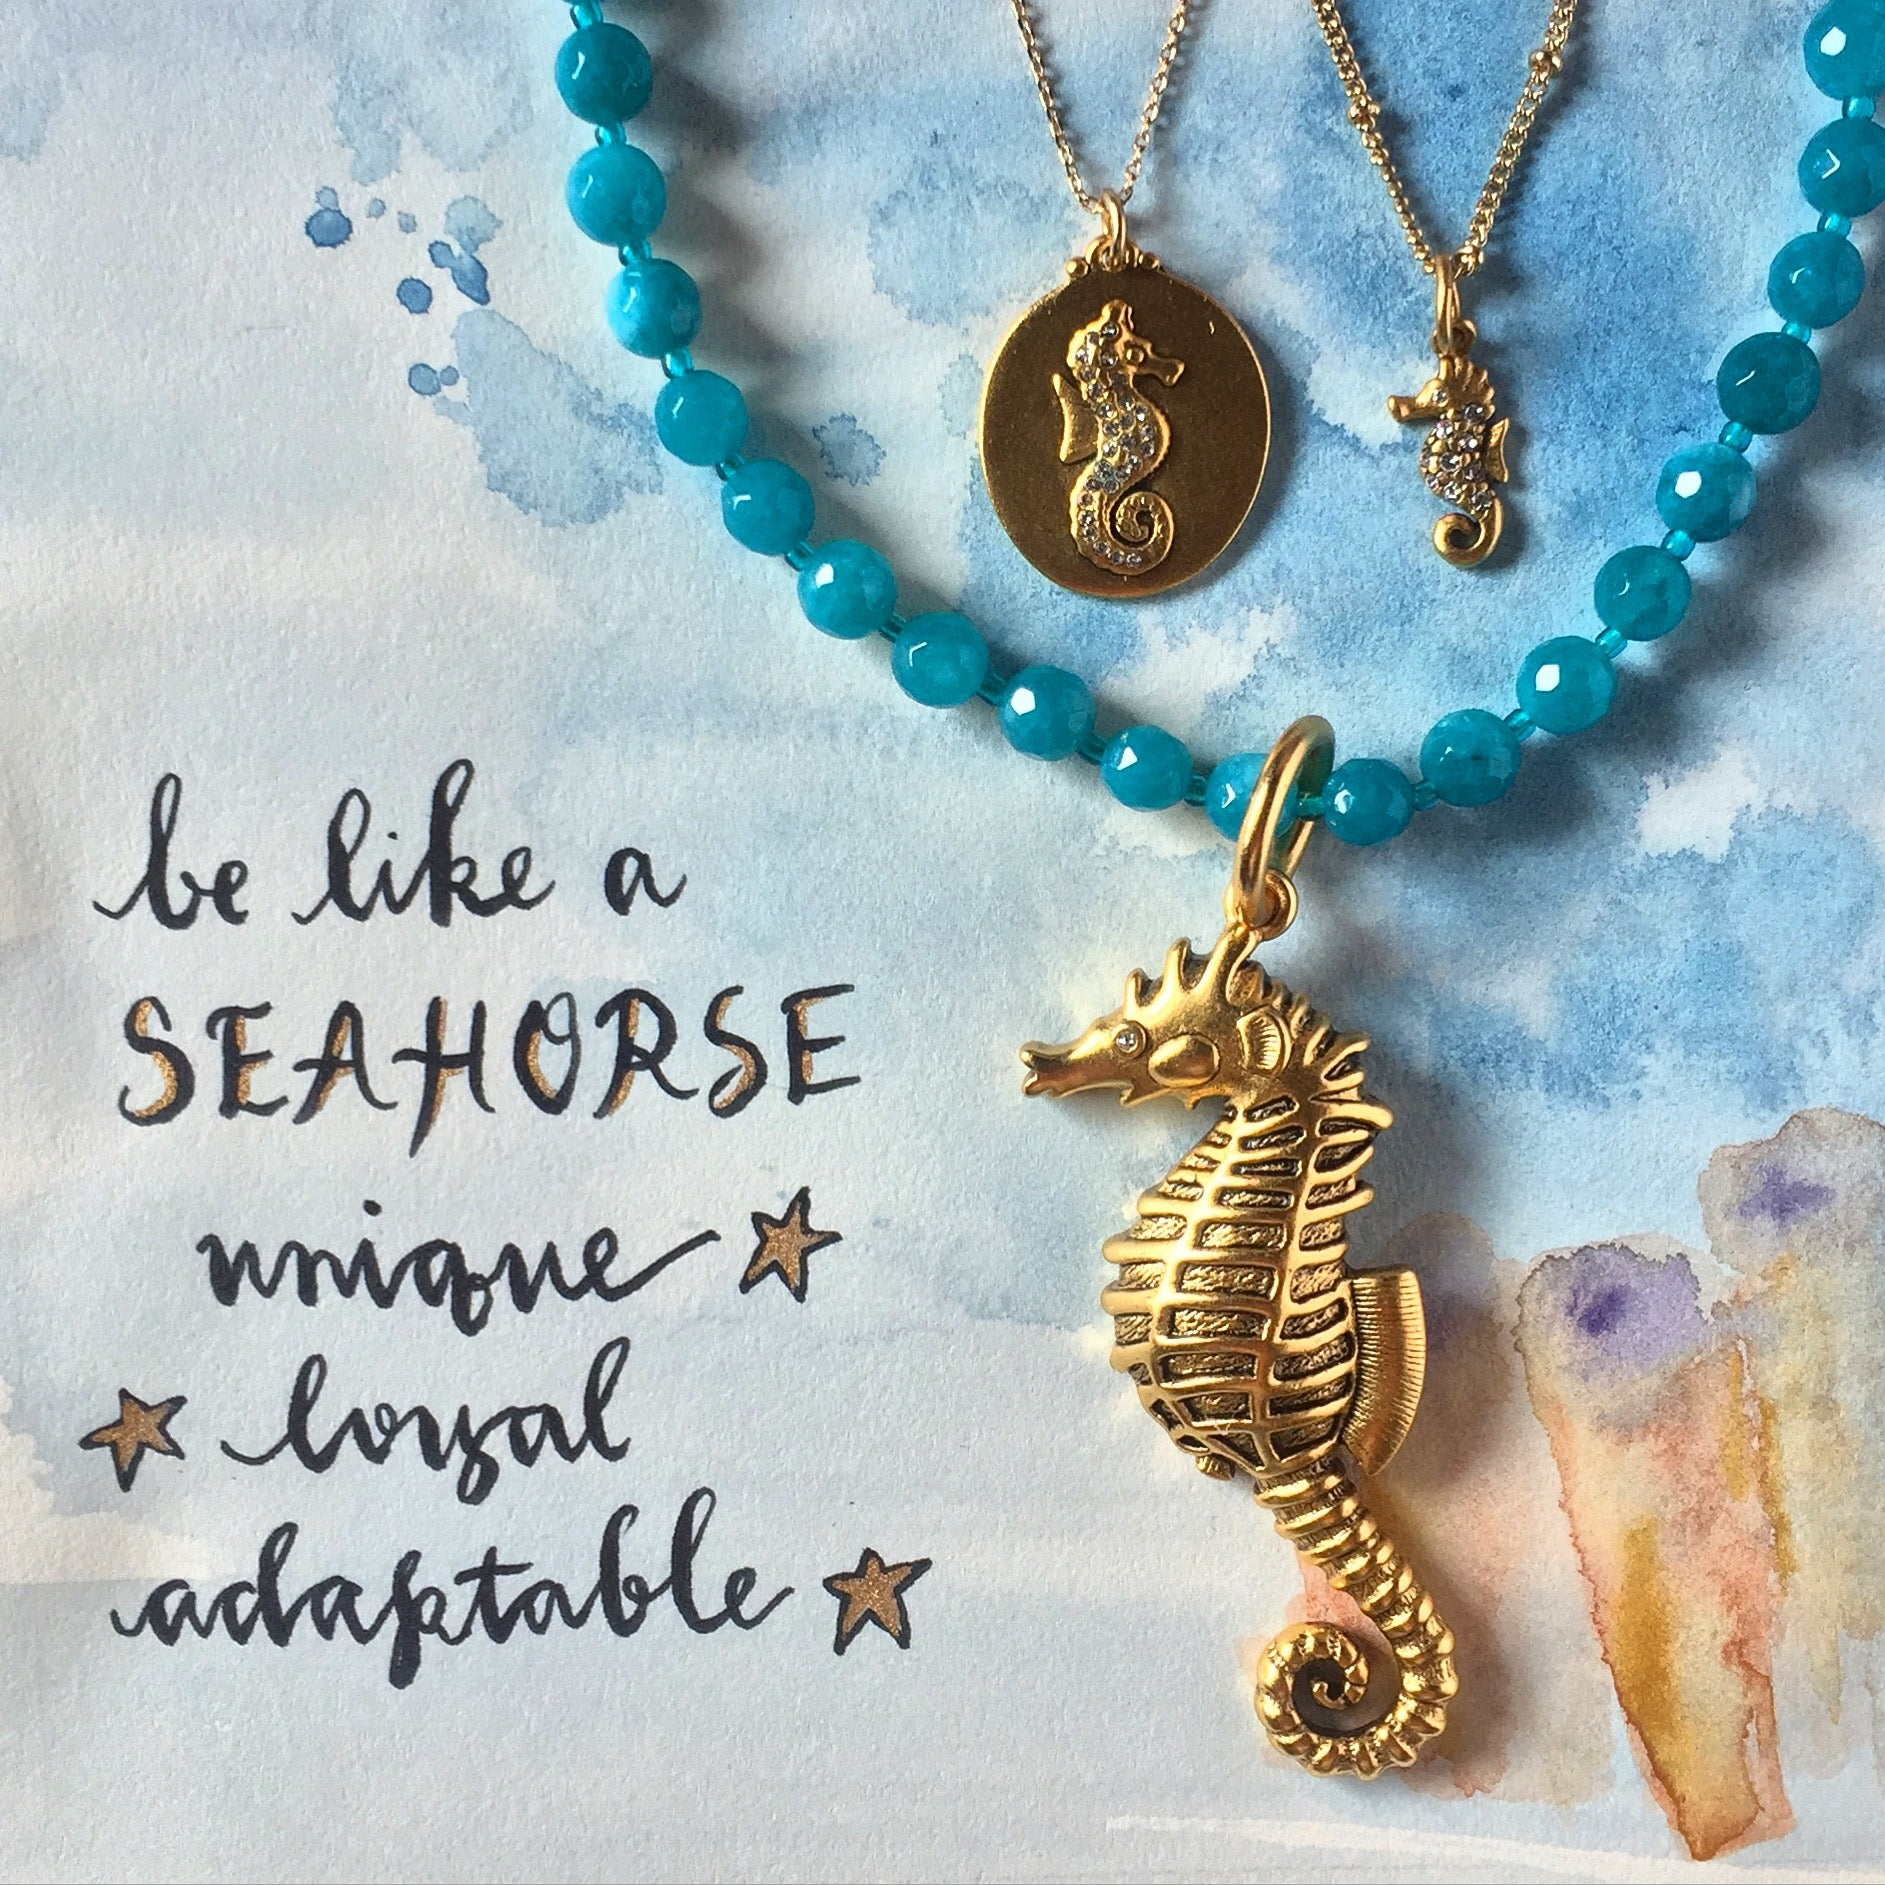 #SequinSayings - Be Like a Seahorse